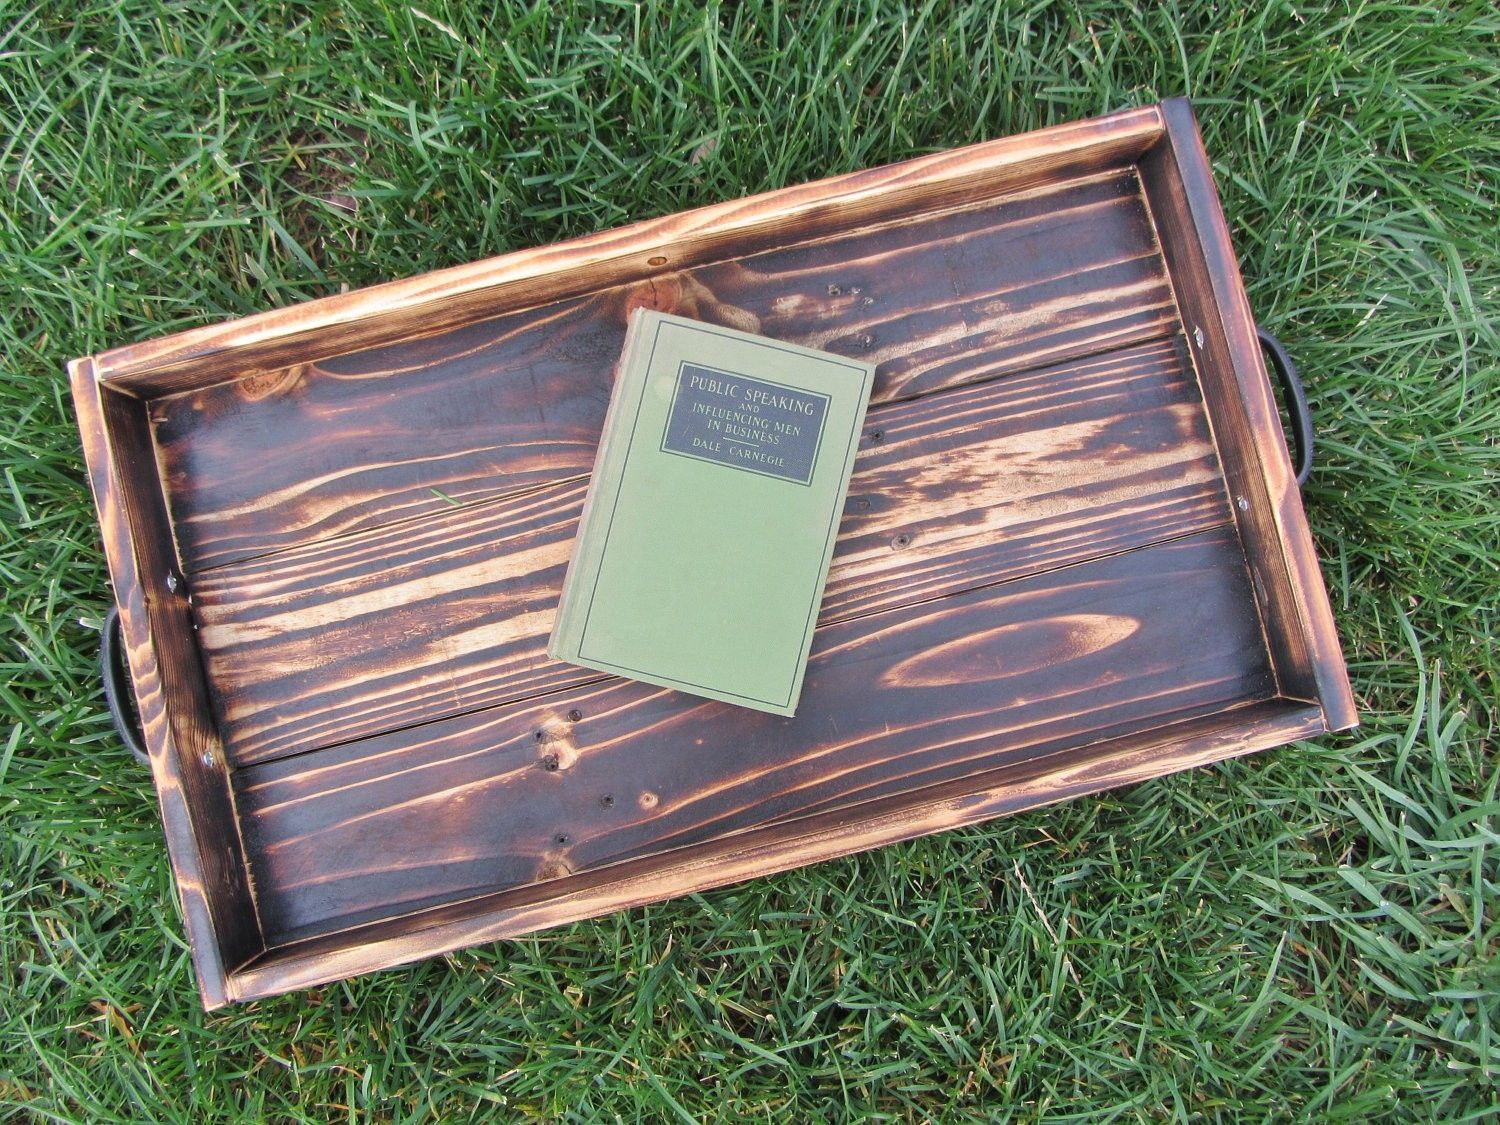 Custom Made Wood Ottoman Tray Made From Reclaimed Pallet Wood Serving Tray - Hand Made Wood Ottoman Tray Made From Reclaimed Pallet Wood